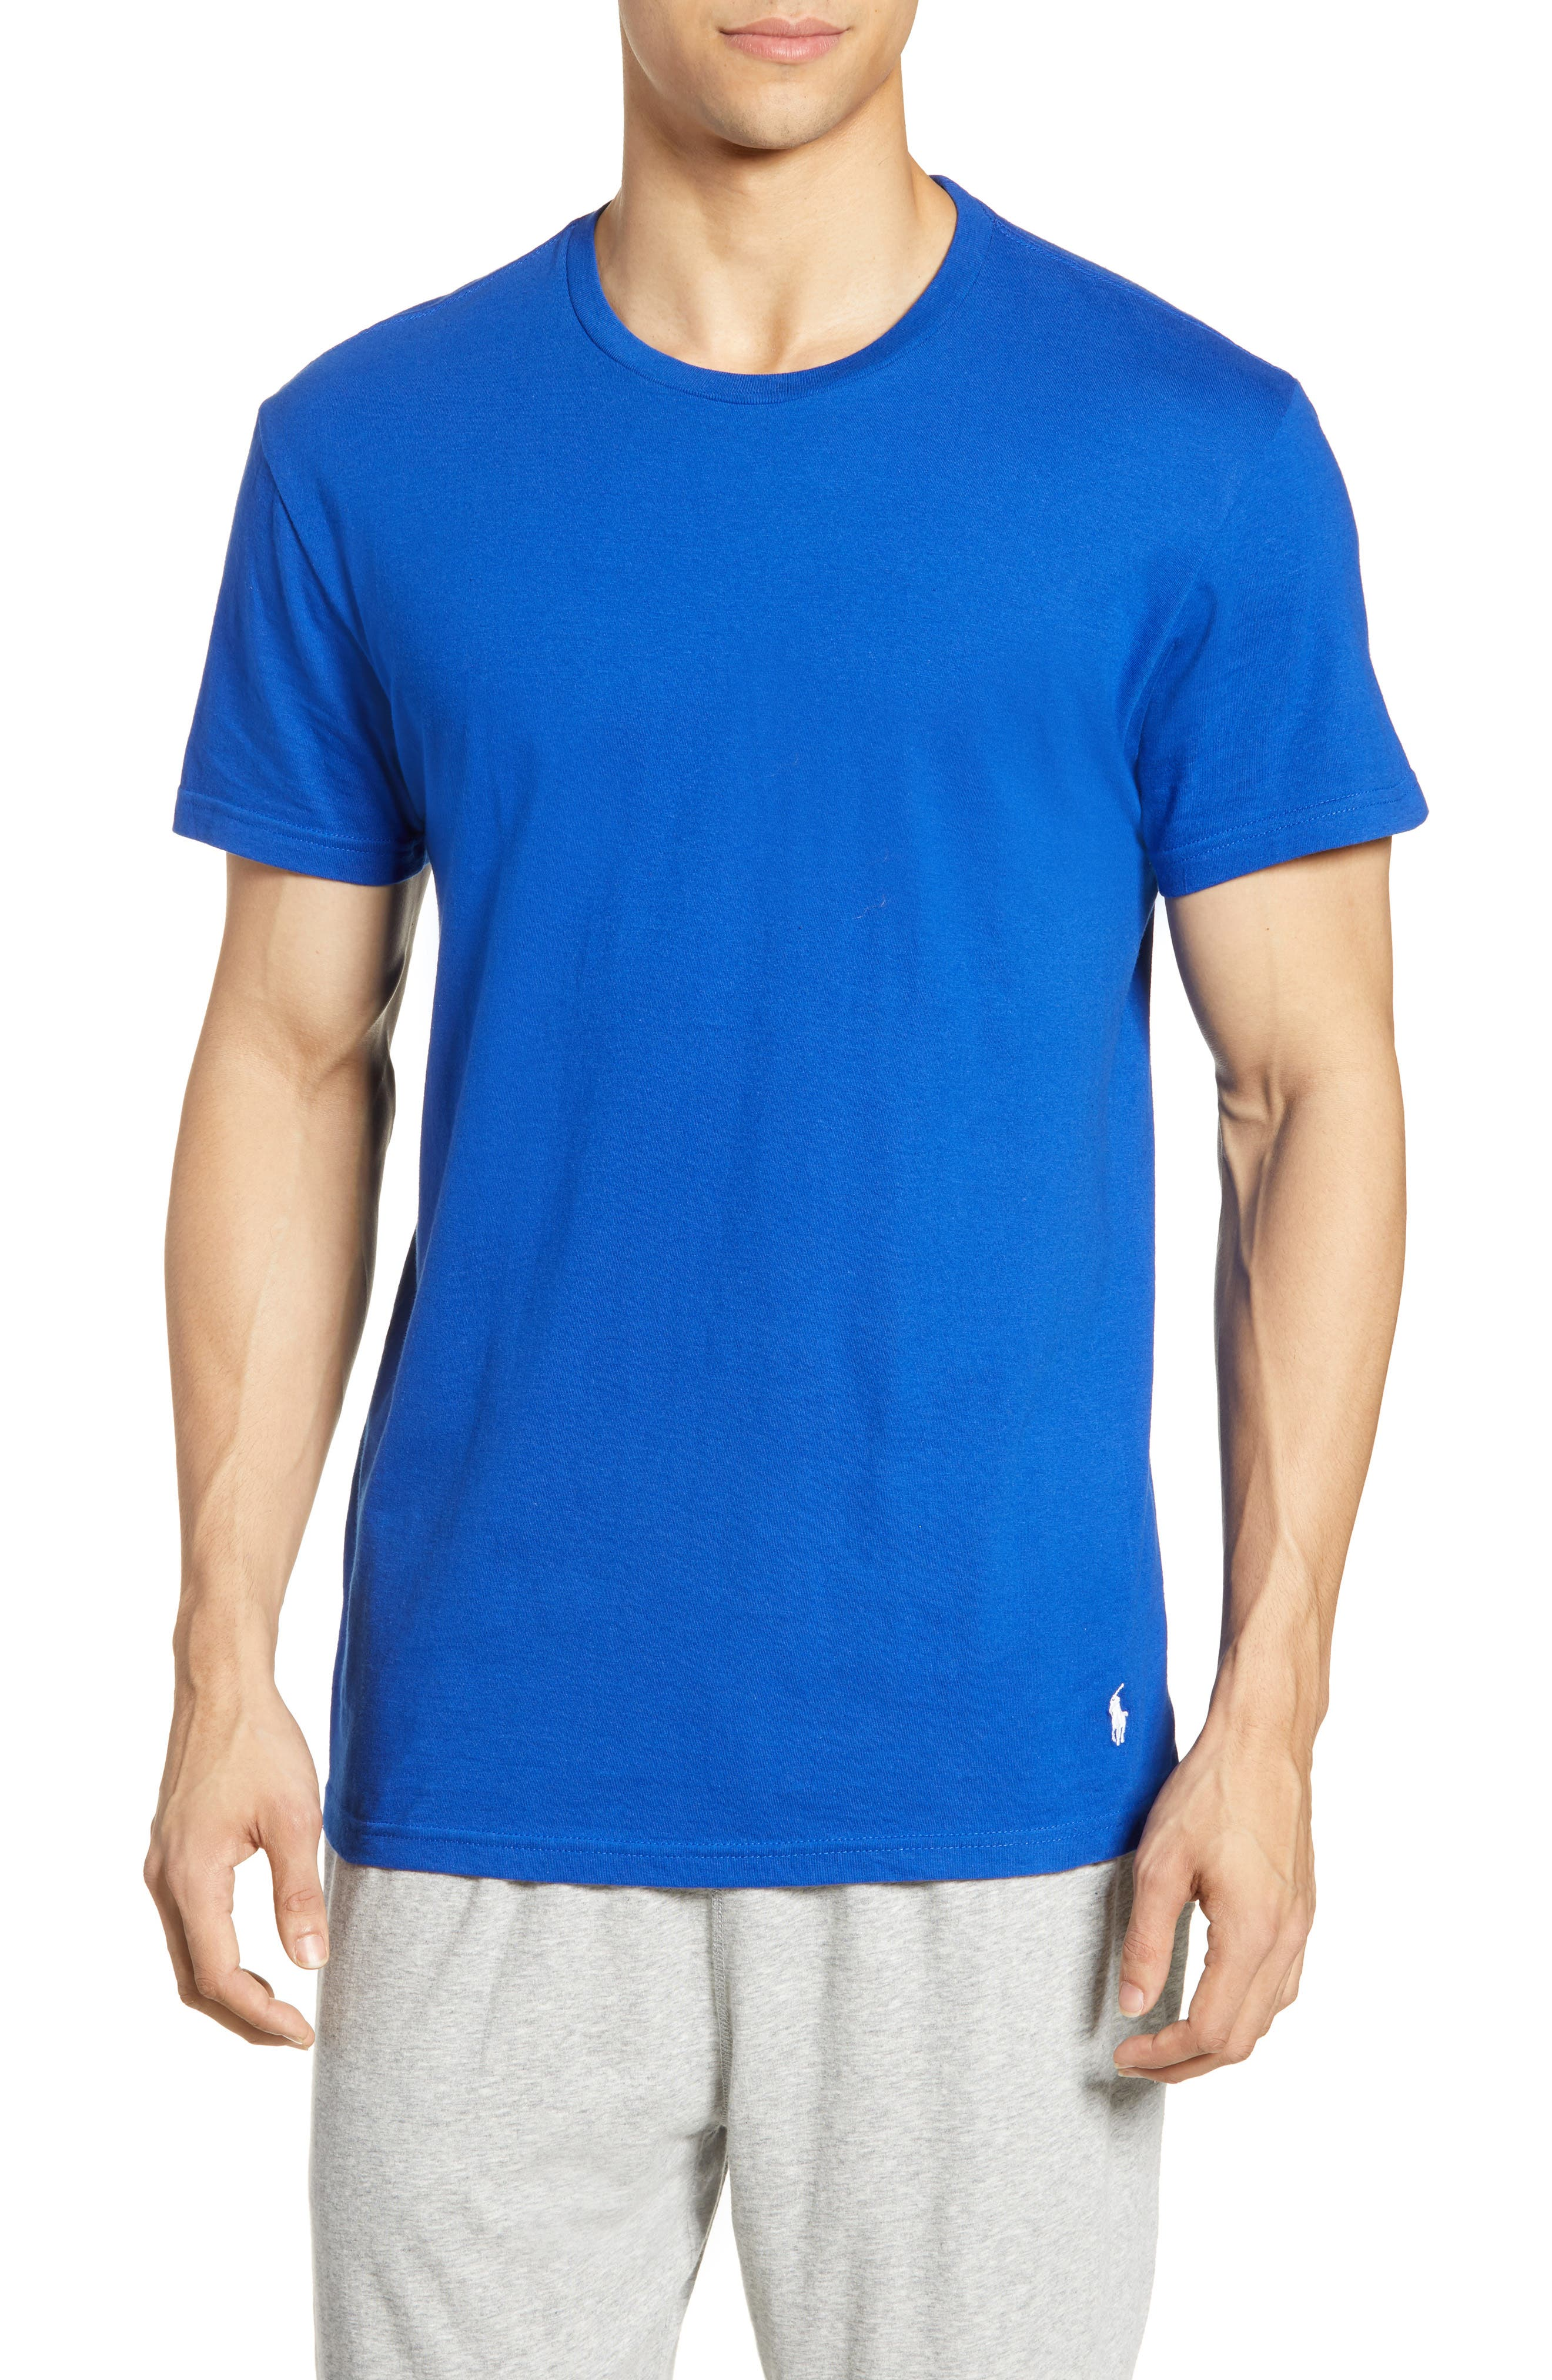 POLO RALPH LAUREN, 3-Pack Crewneck T-Shirts, Alternate thumbnail 2, color, CRUISE ROYAL/ RED/ CRUISE NAVY